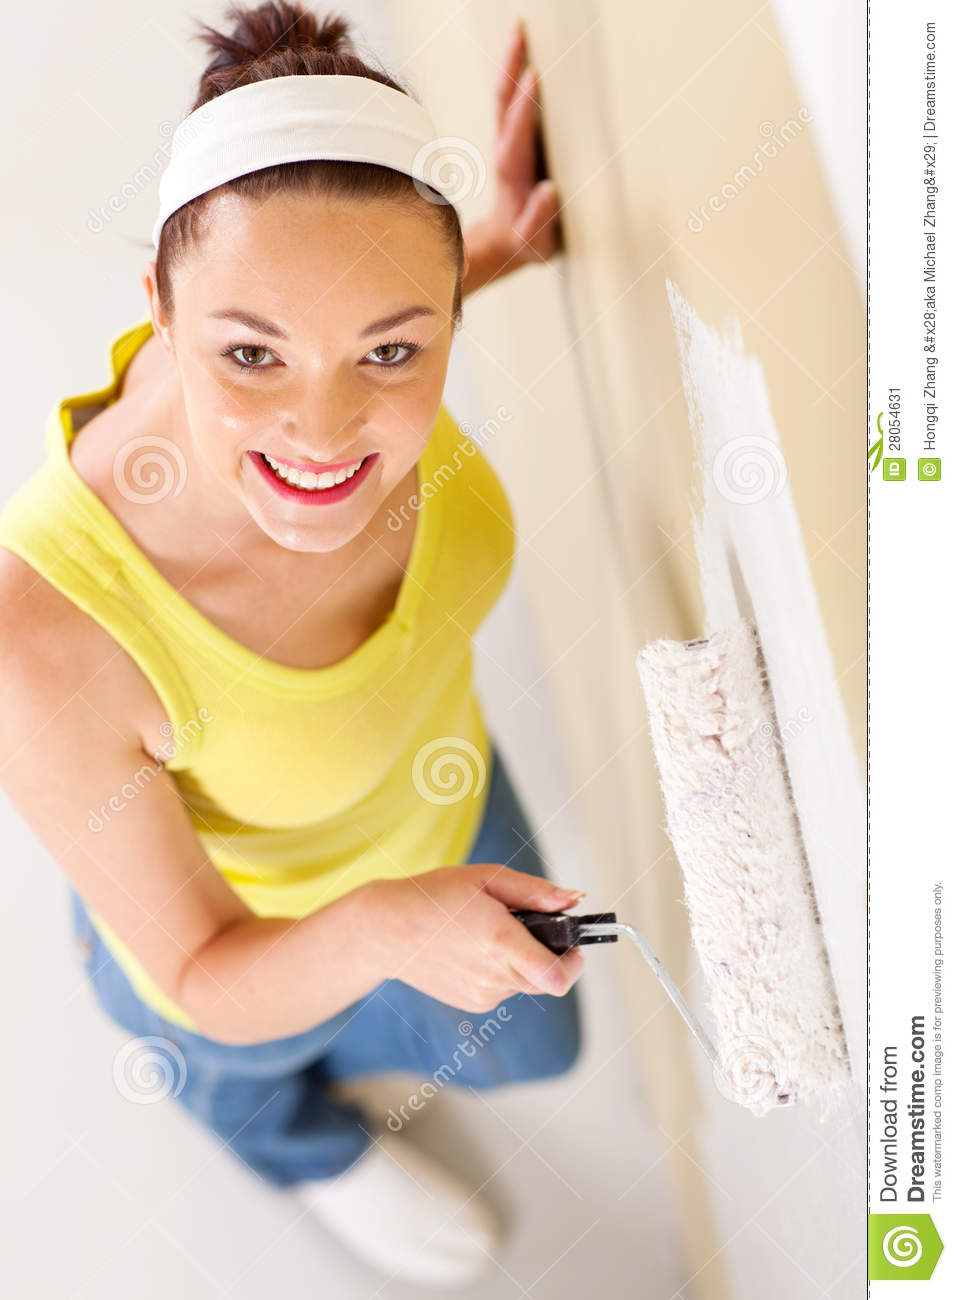 One Woman Painting High-Res Stock Photo - Getty Images